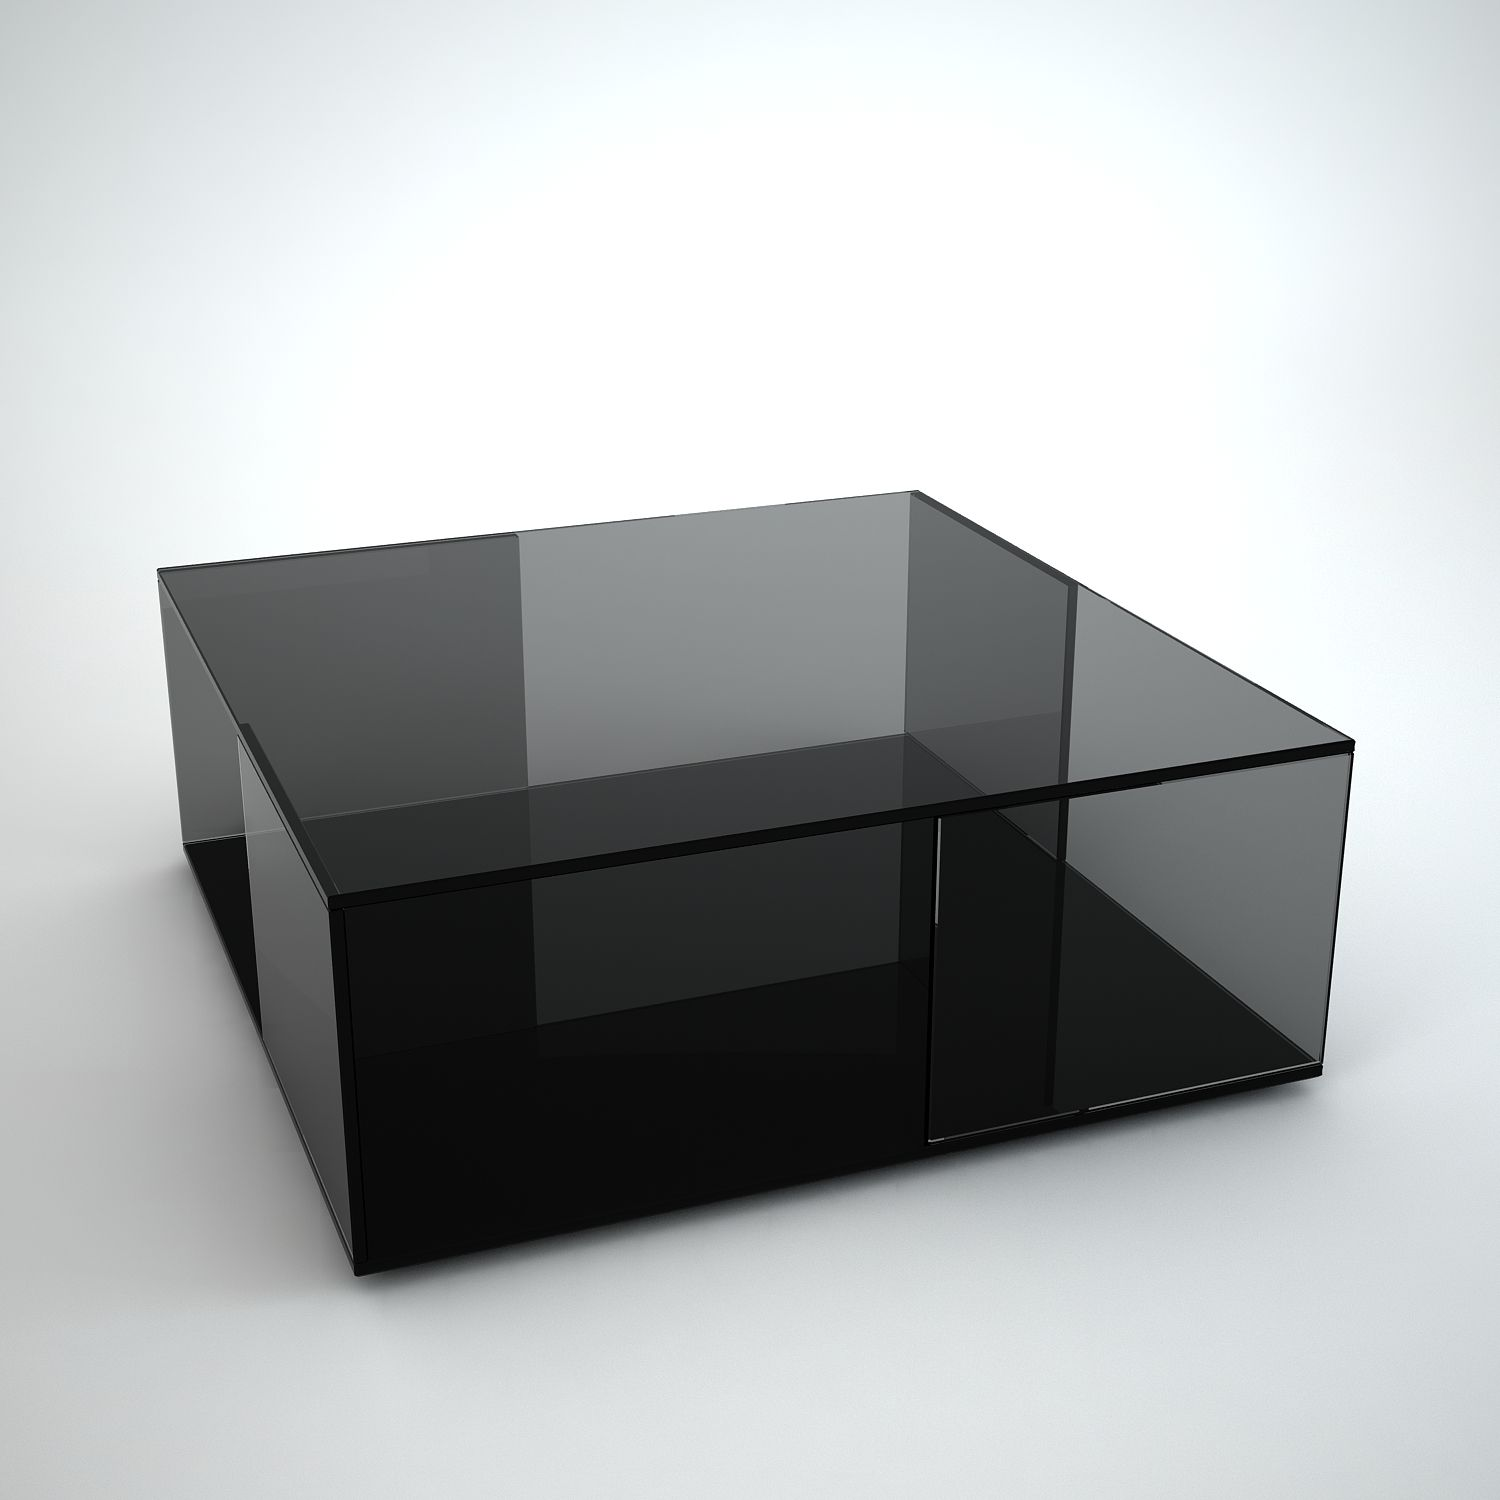 - Tifino Square Grey Tint Glass Coffee Table By Klarity Black